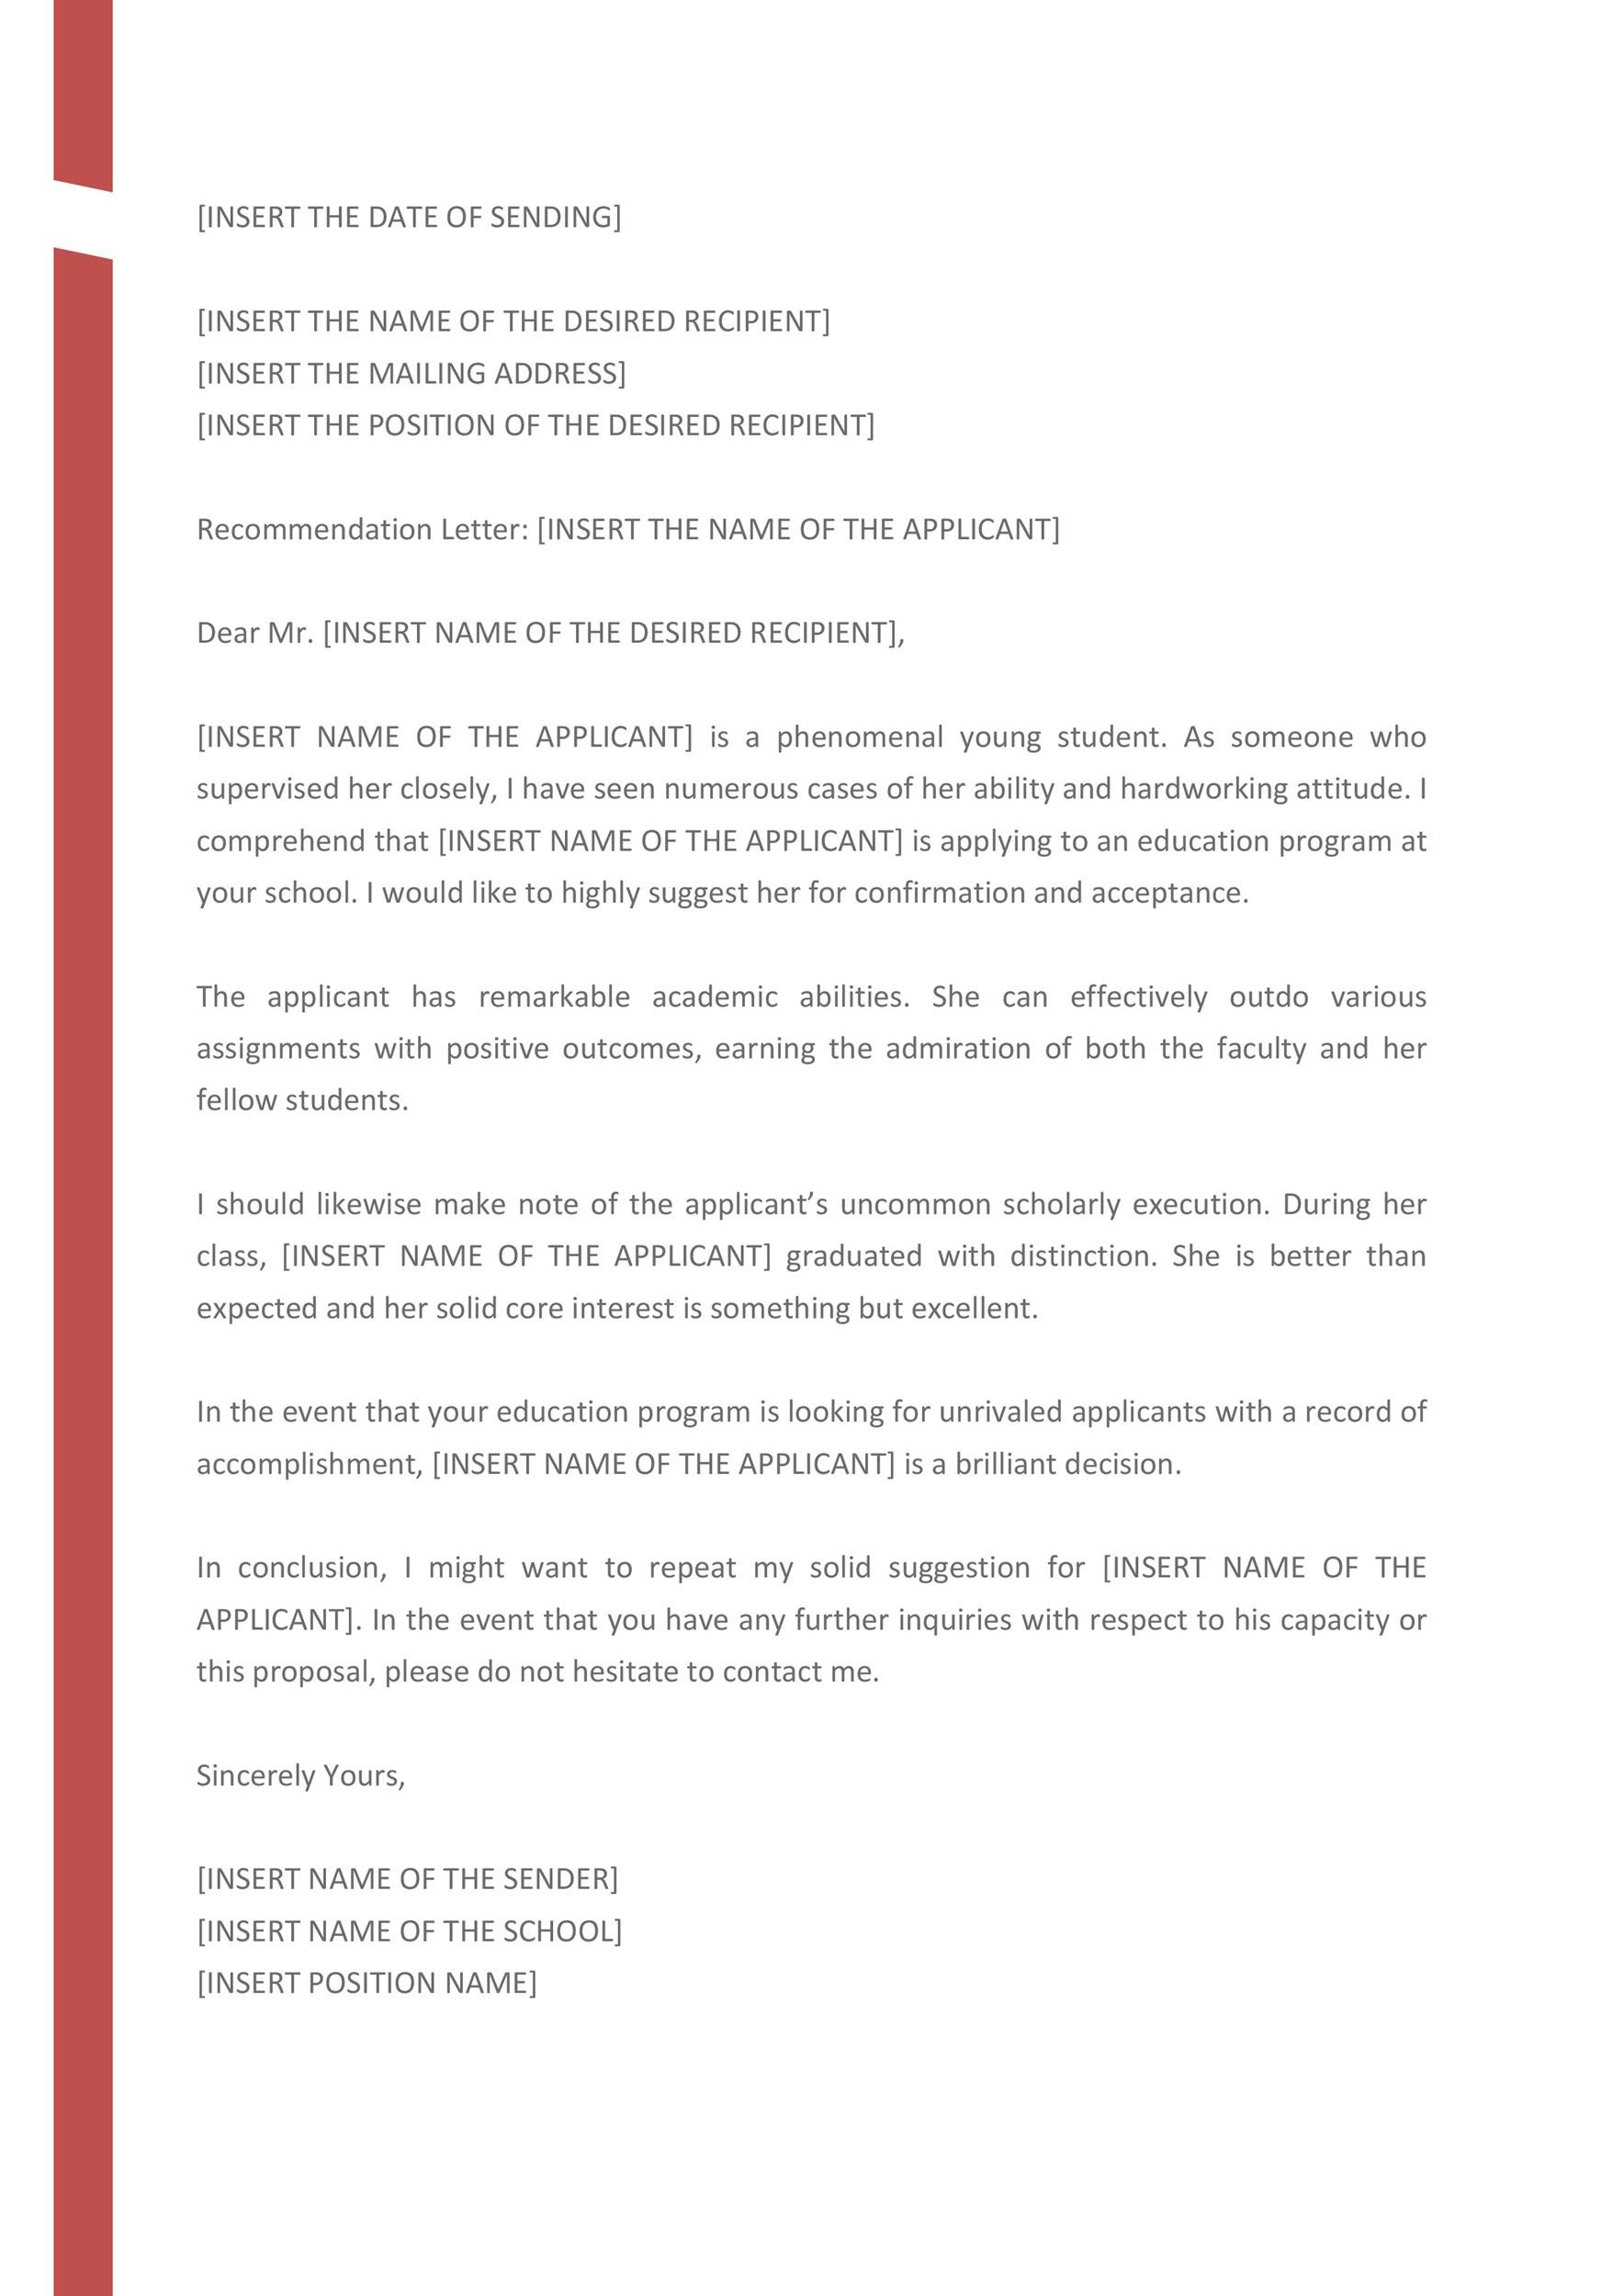 Free Recommendation Letter From Teacher Template 27